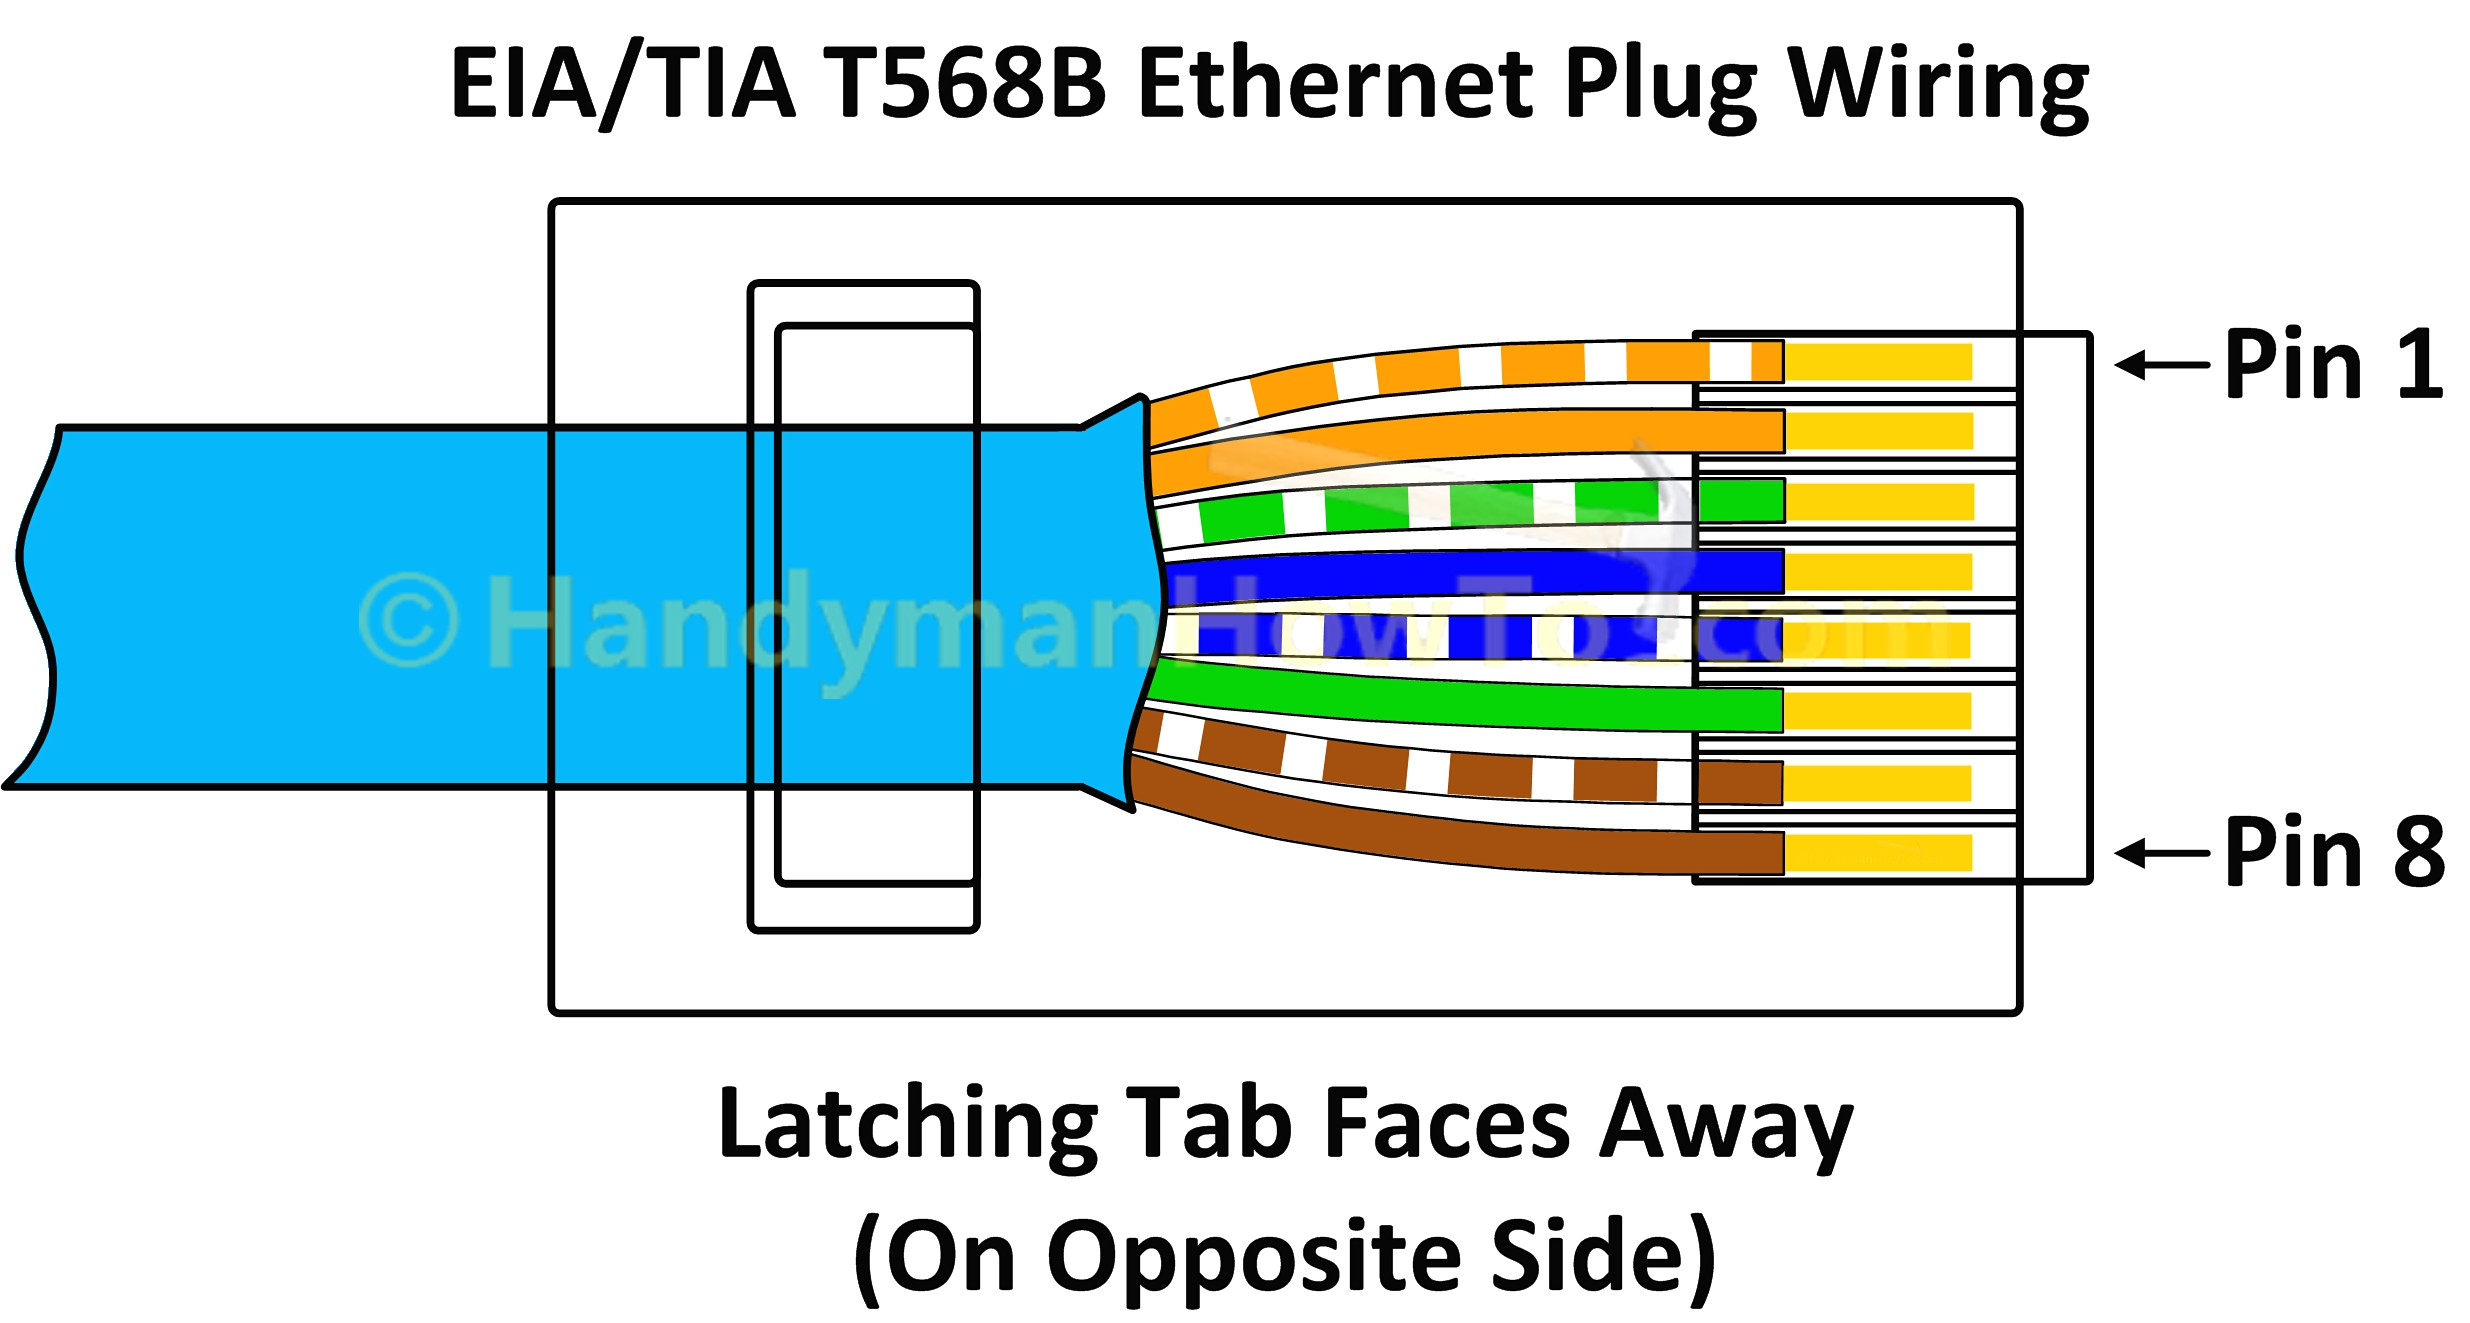 ethernet cable wiring diagram cat5e Download-Cat5e Wire Diagram In T568A T568B RJ45 Cat6 Ethernet Cable Wiring Throughout 16-g